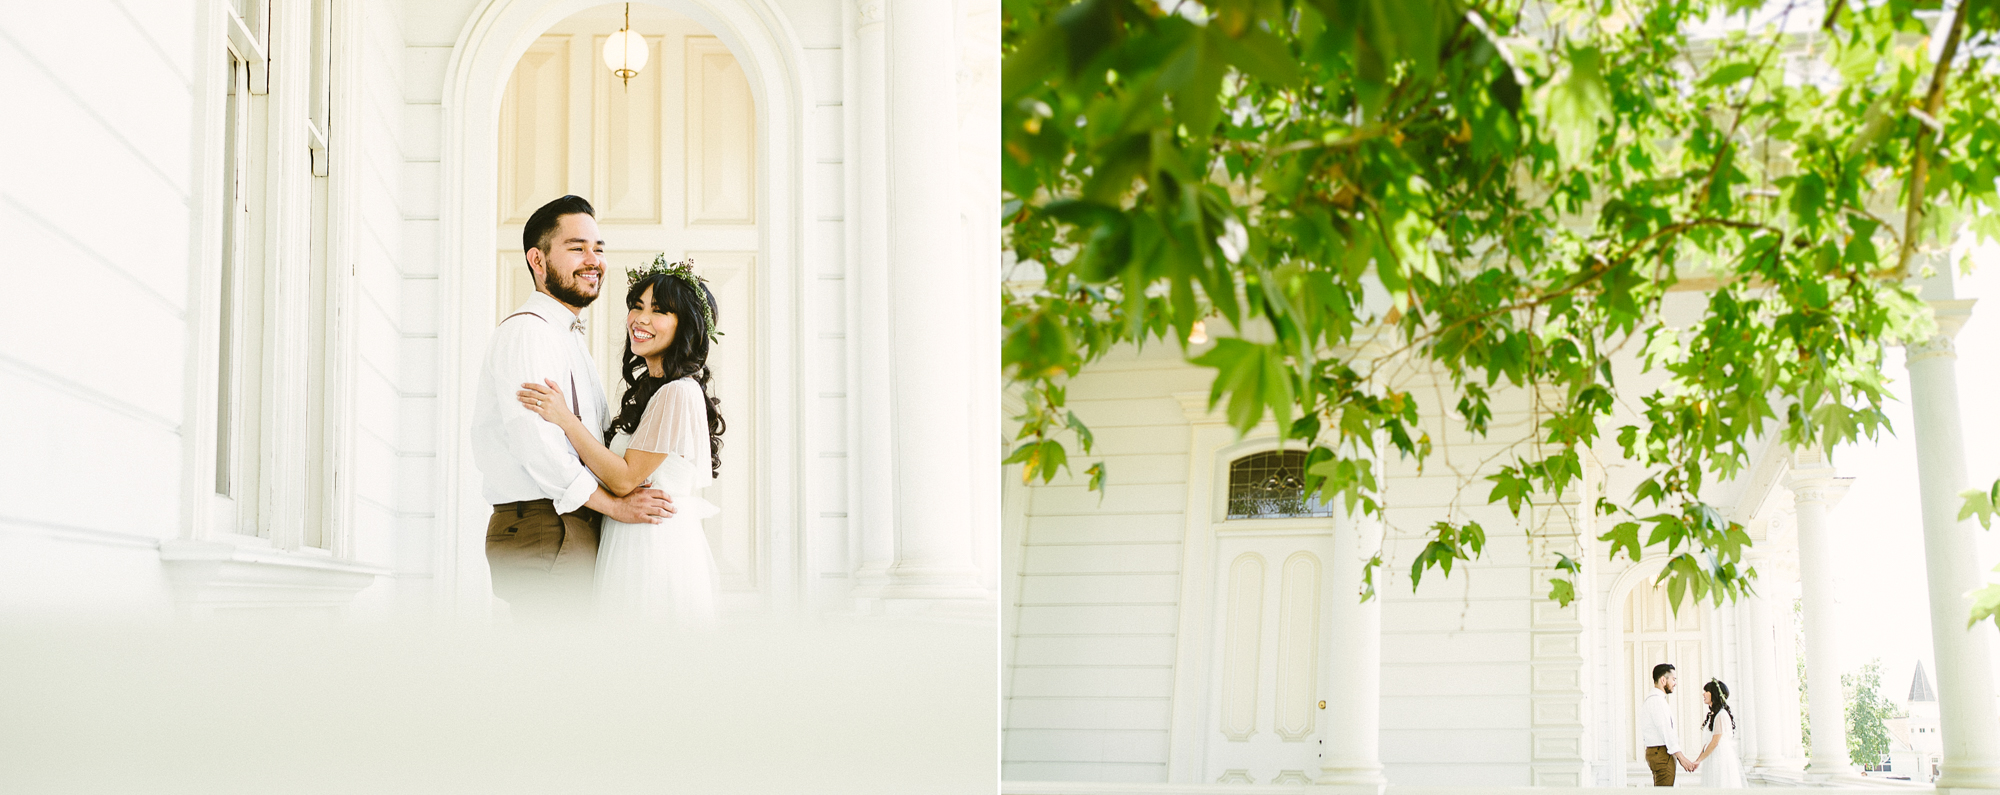 Isaiah & Taylor Photography - Los Angeles - Destination Wedding Photographers - Heritage Square Museum -37.jpg